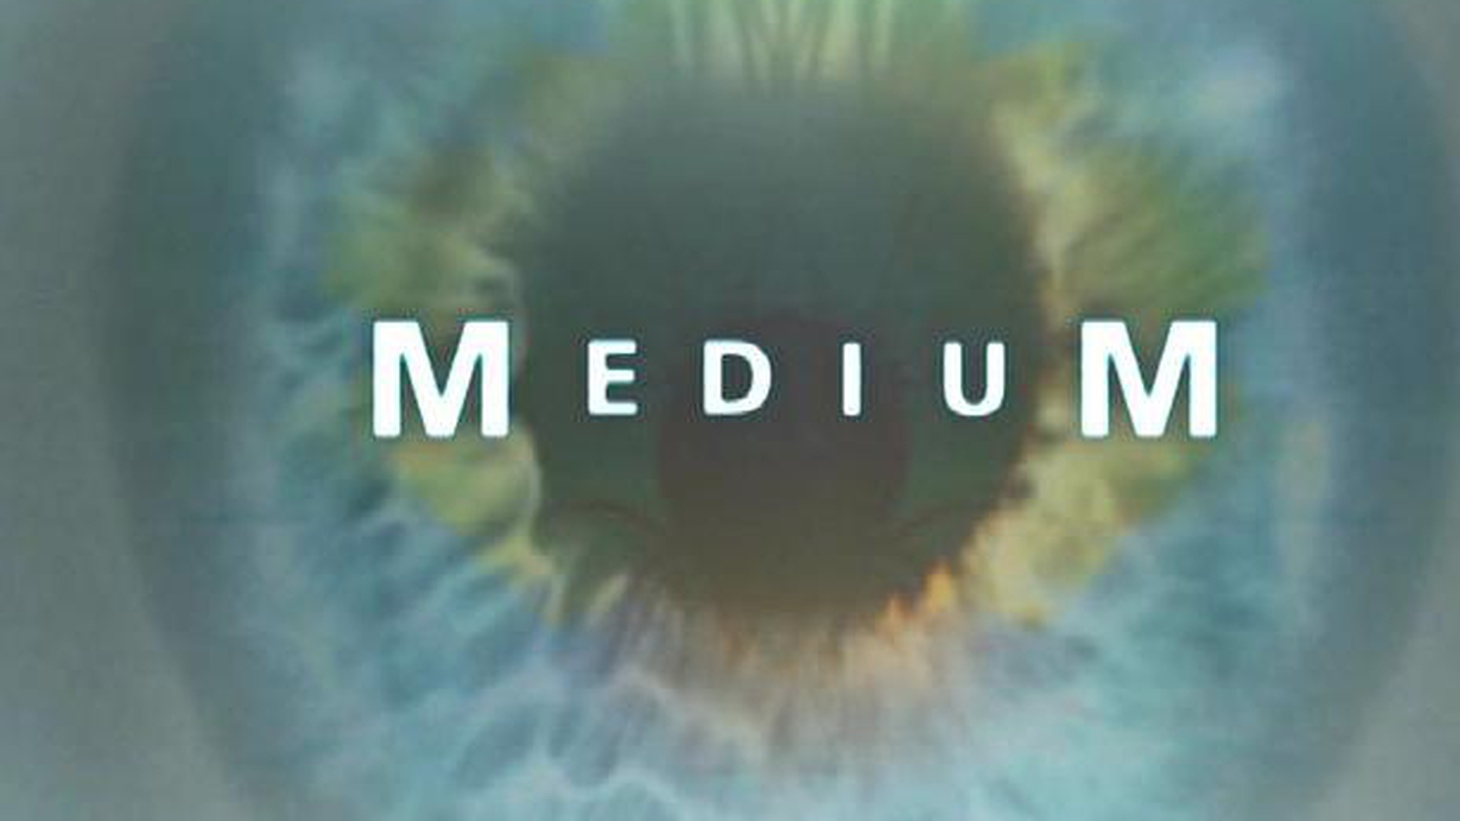 Network TV scheduling turns into a brutal game of musical chairs. We talk to the creator of the NBC show Medium, which jumped to CBS at the last minute to grab a seat.